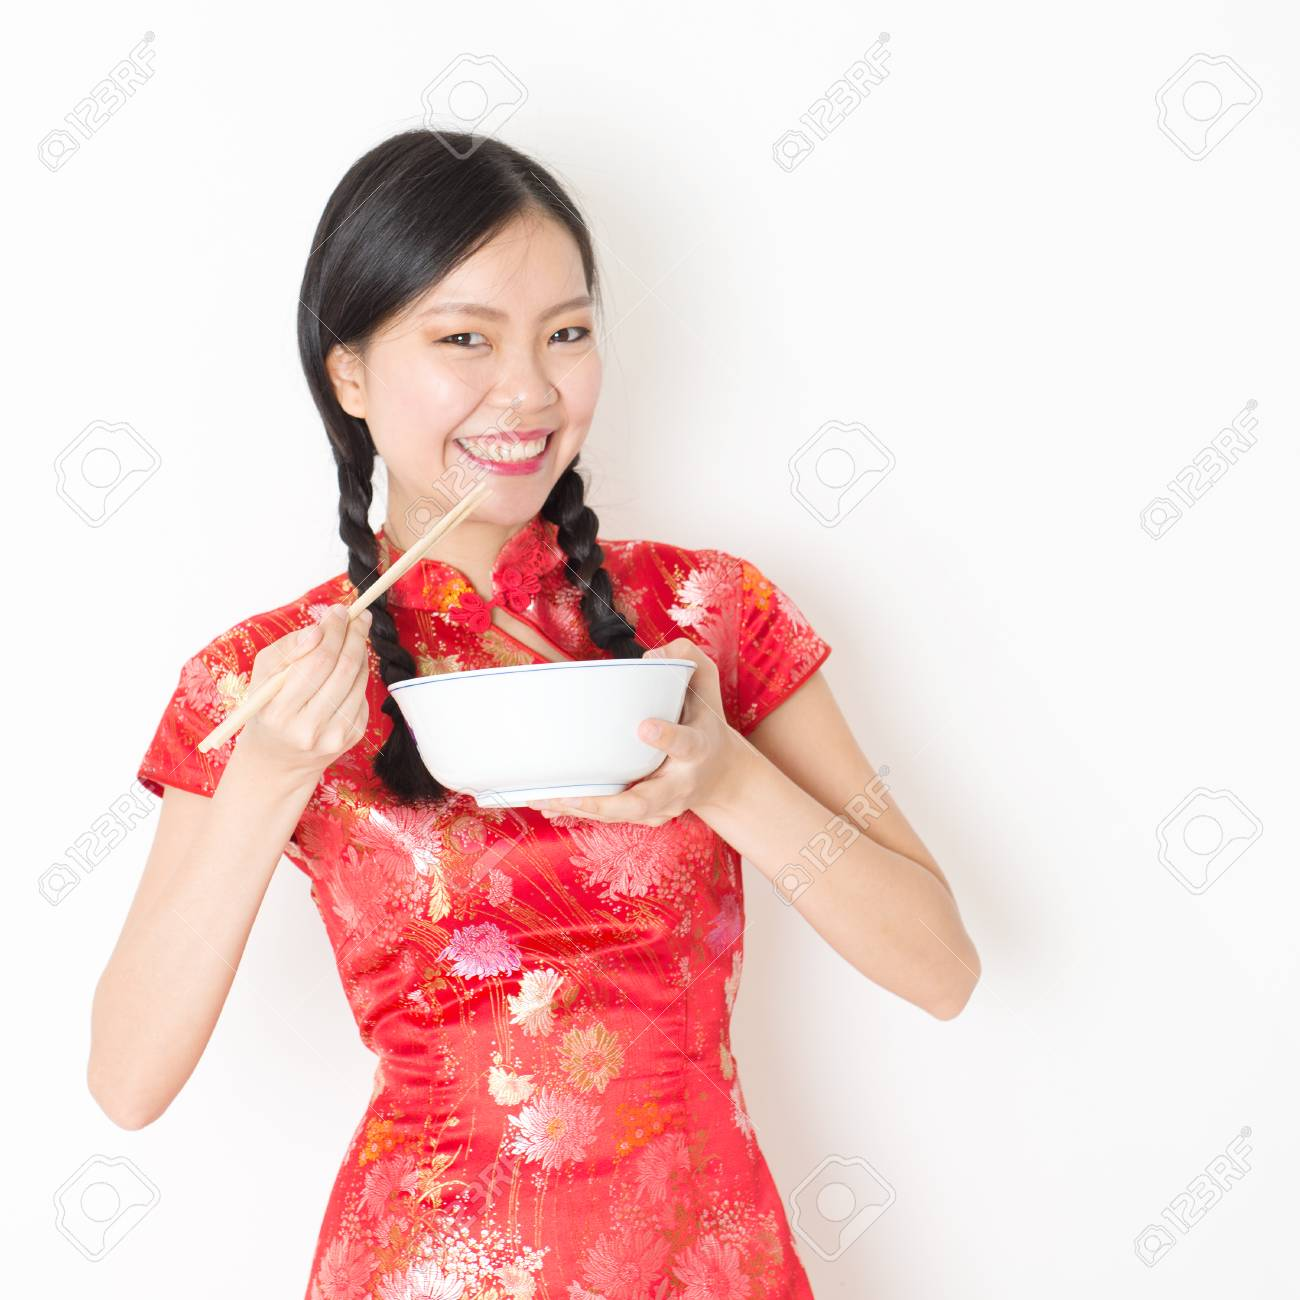 fa456479f Portrait of young Asian woman in traditional qipao dress eating, hand  holding bowl and chopsticks